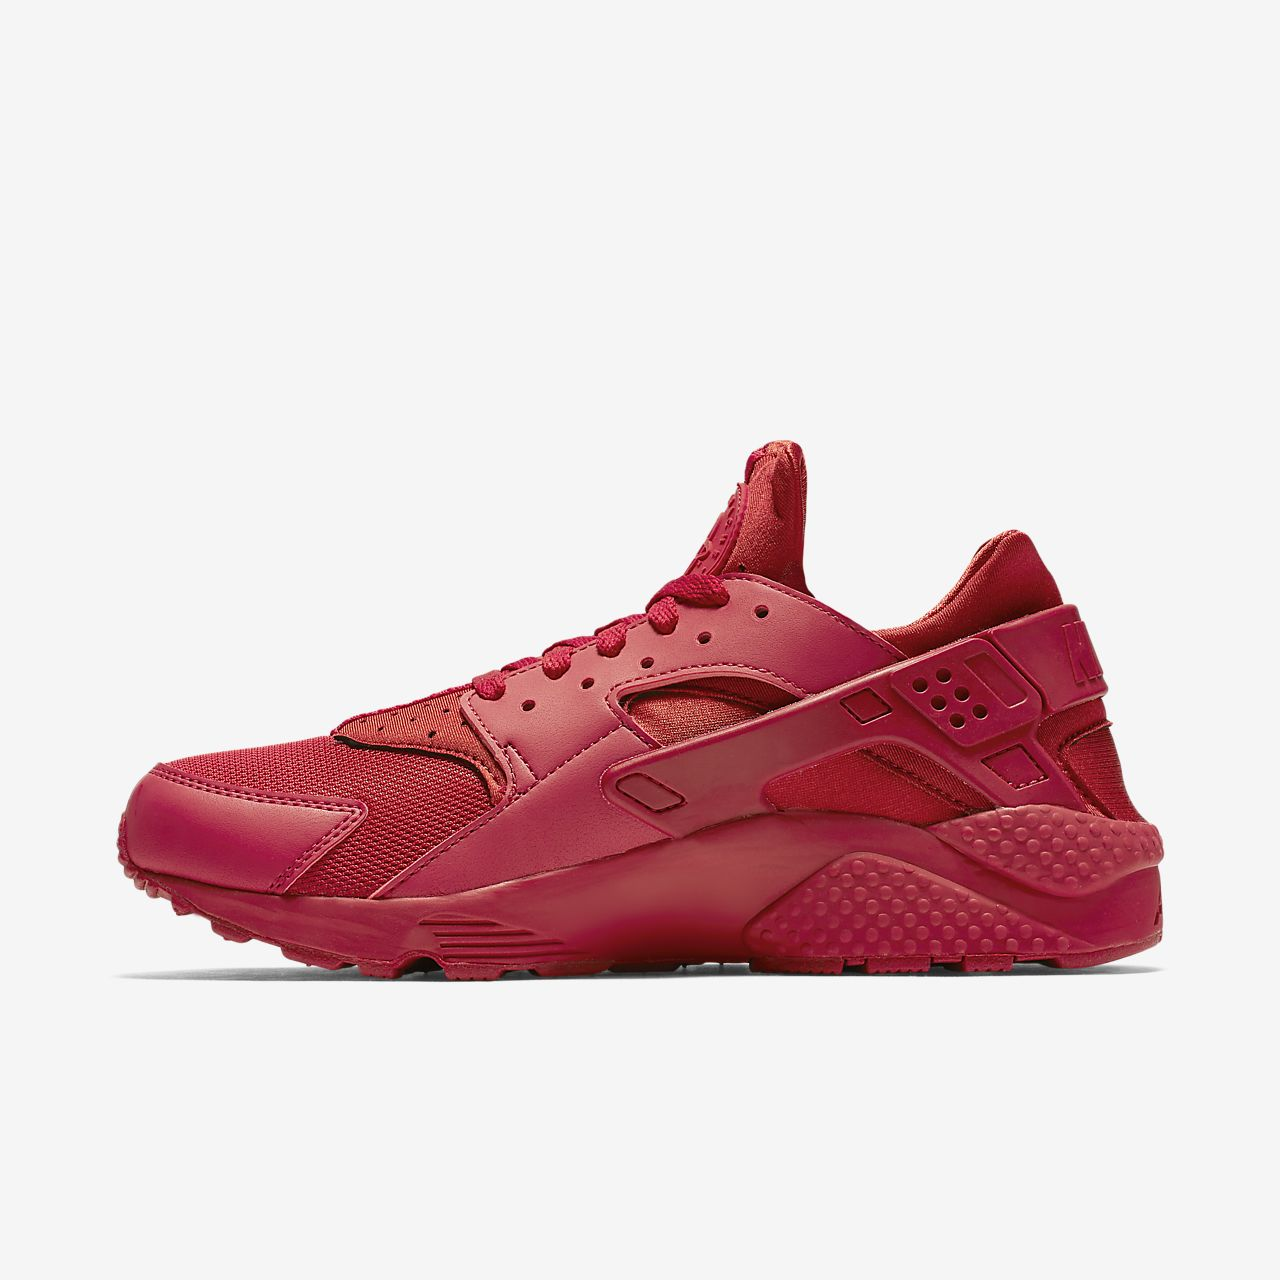 1a650cccd41 Nike Air Huarache Men s Shoe. Nike.com